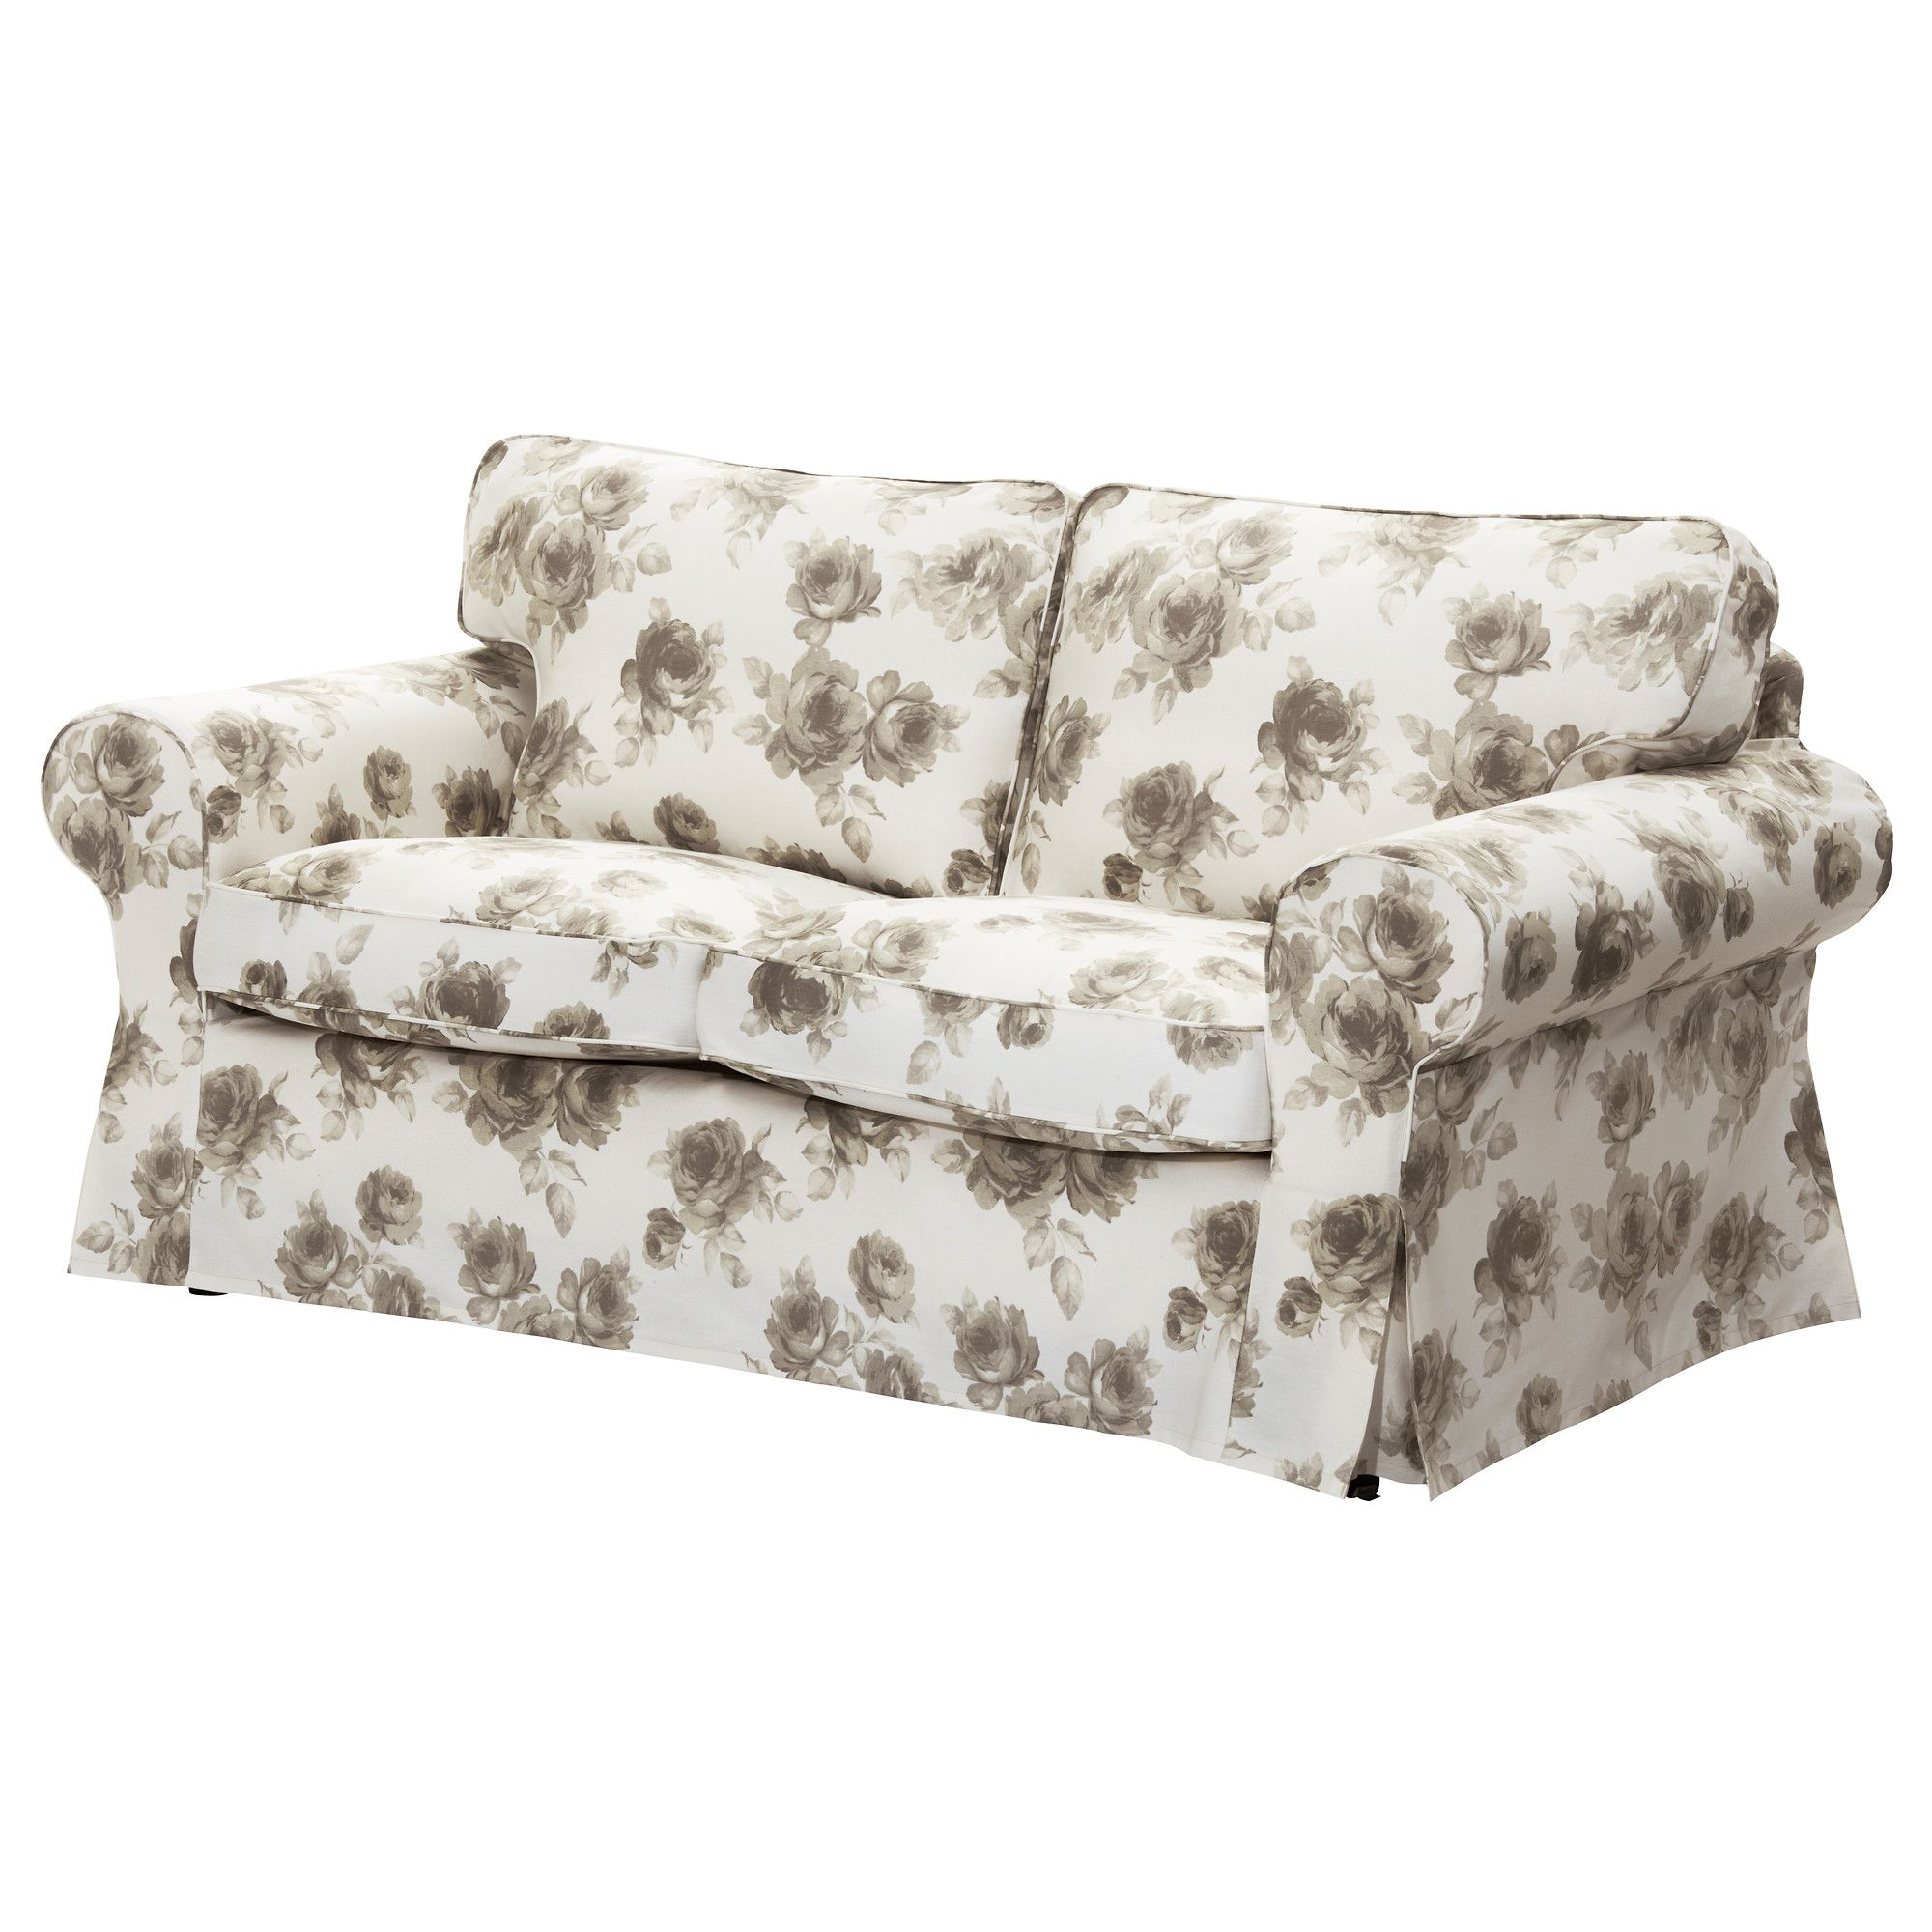 slipcovers sleeper sofas sectional reviews of slipcover replacement ideas leather covers size karlstad full images loveseat sale divine ikea ektorp sofa for